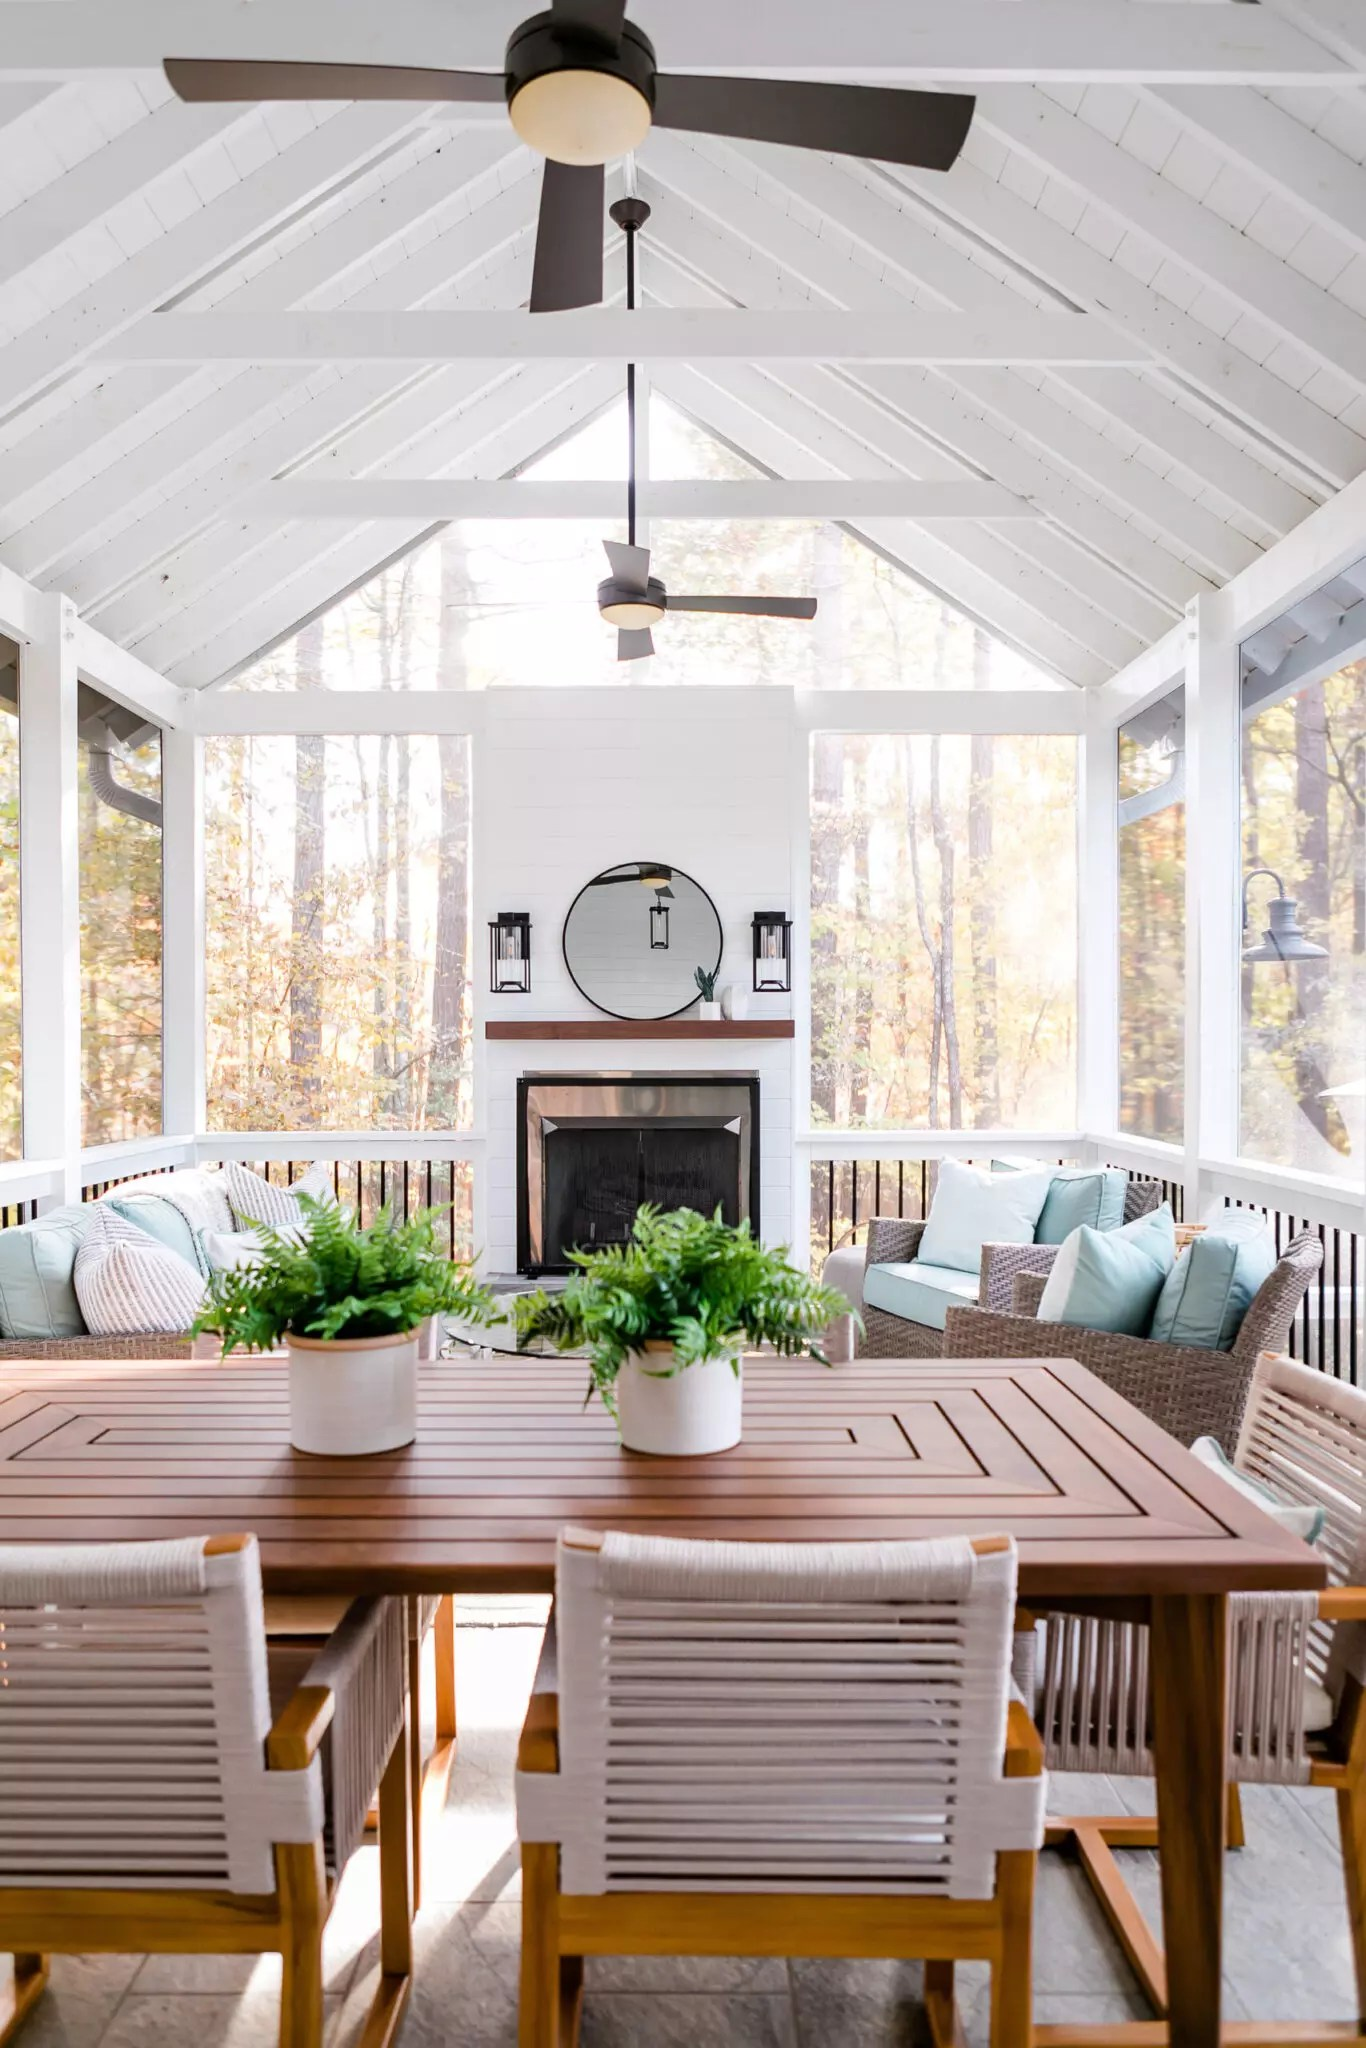 Stunning view of the screen porch layout with teak dining set and amazing outdoor furnishings - Catherine French Design